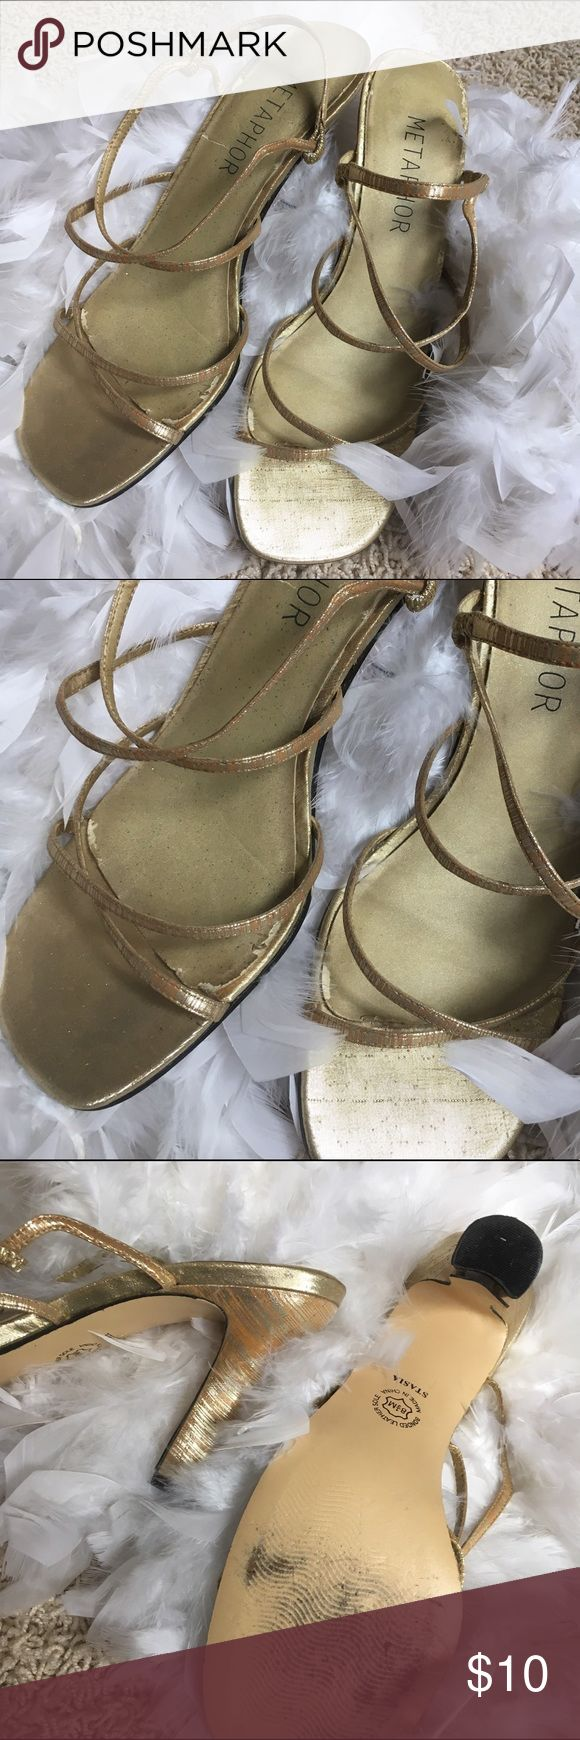 "VINTAGE Metaphor Gold Open Toe Heels Vintage. Some outter wear for its age. Size 8.5m. Bonded leather sole. Good condition with vintage wear. Heel is 3.5"" high. Metaphor Shoes Heels"